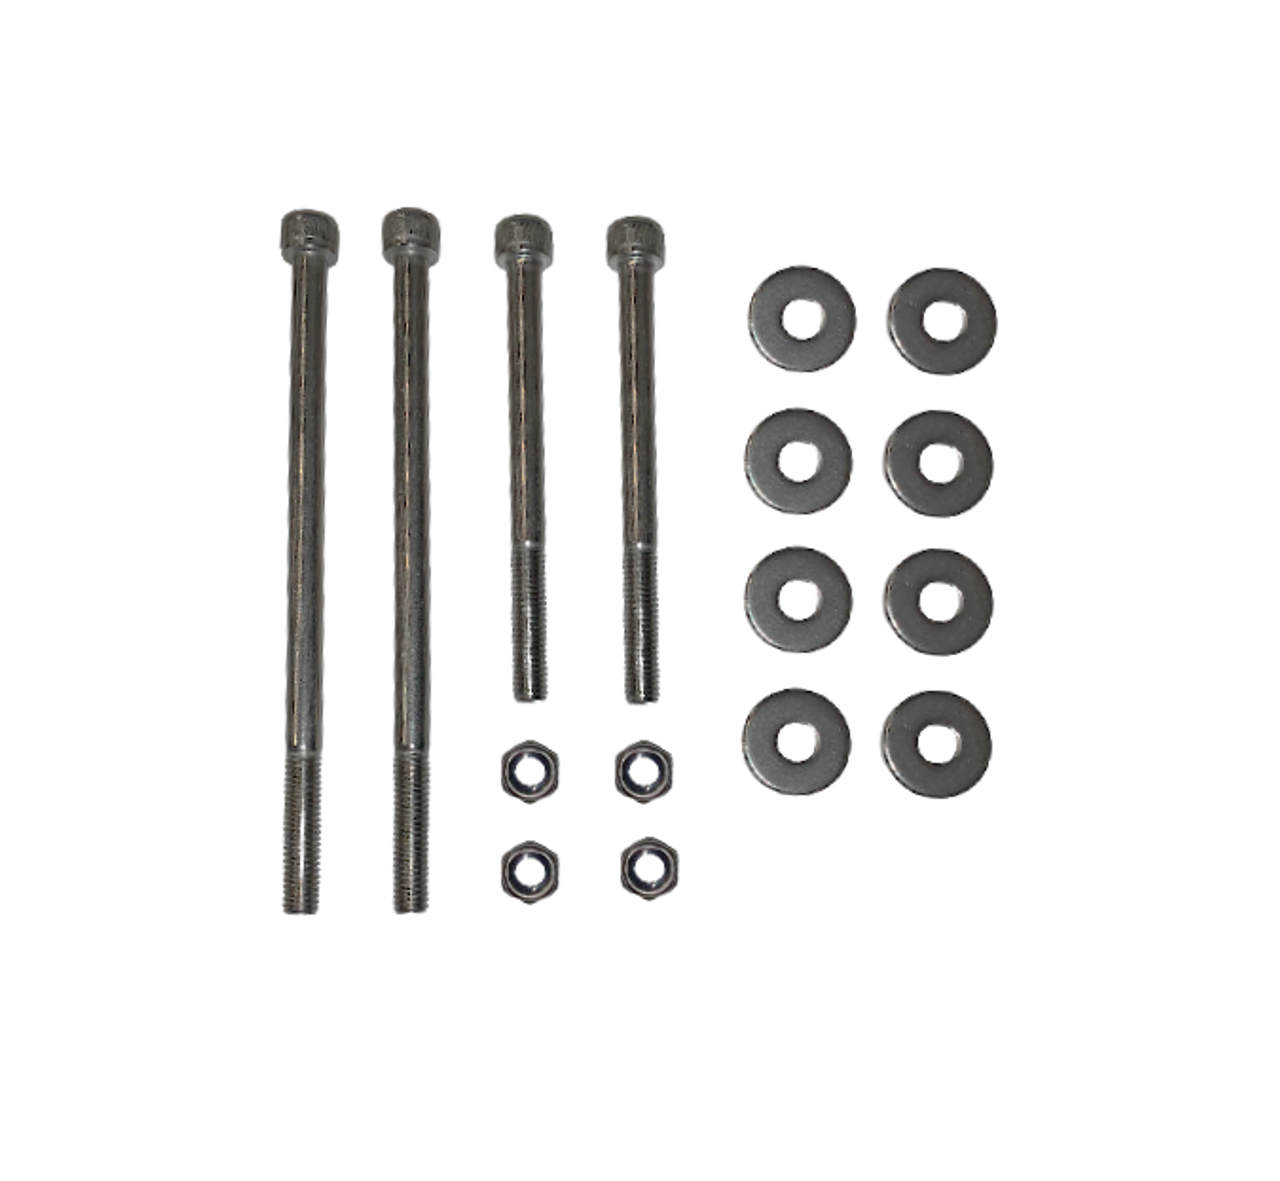 Cubera 120 Nuts and Bolts Kit